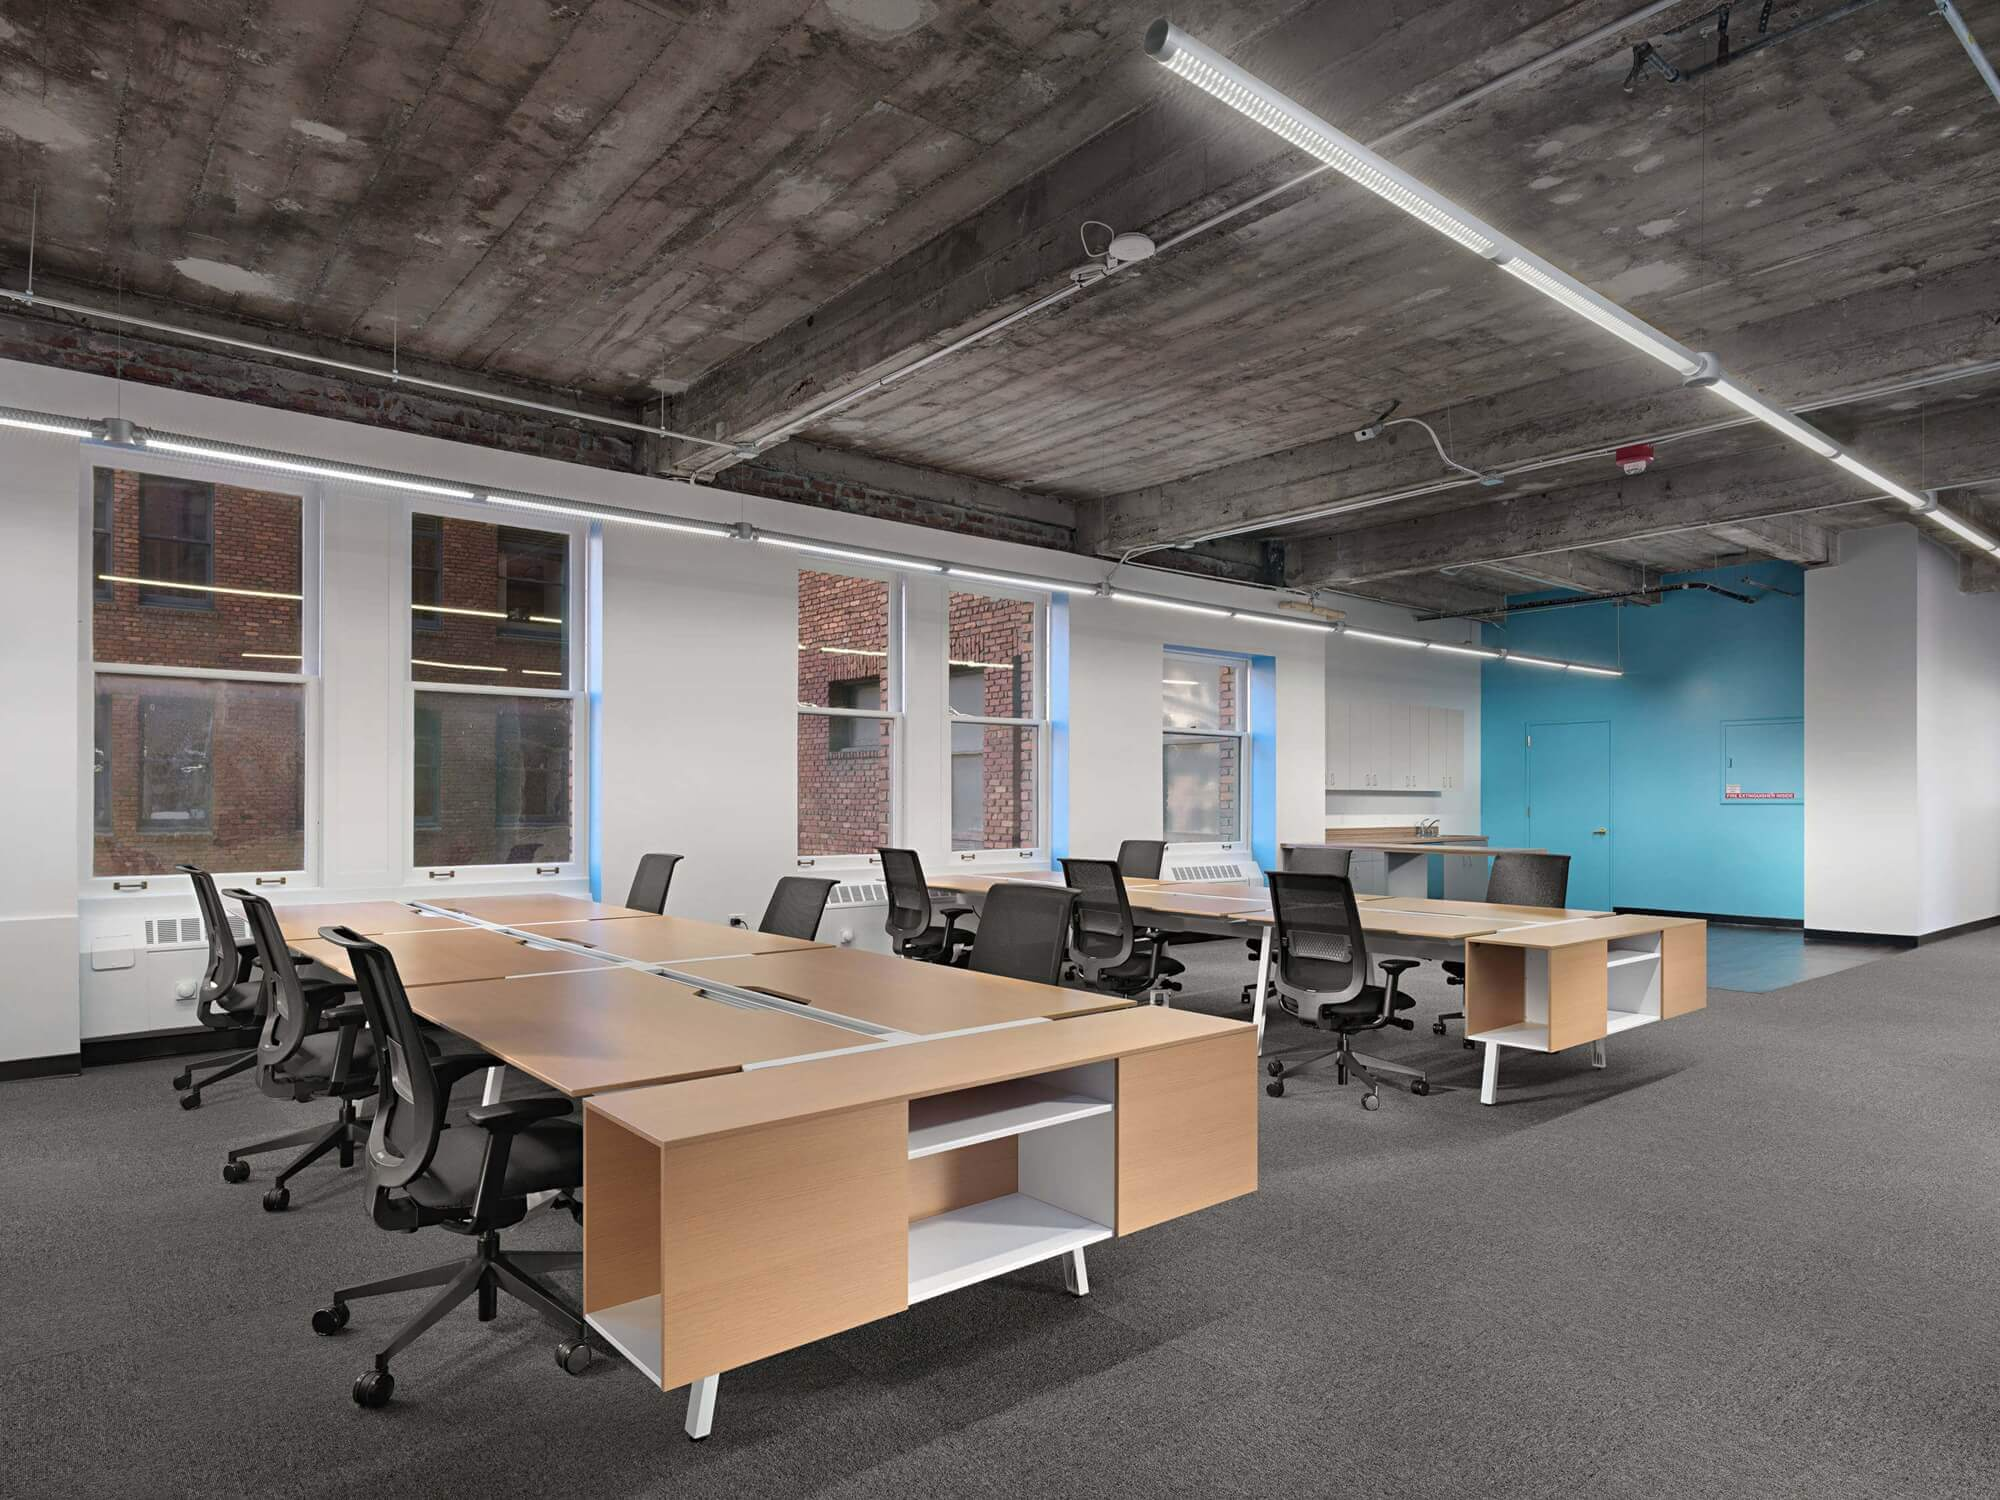 commercial general construction and building renovation - office renovation in san francisco